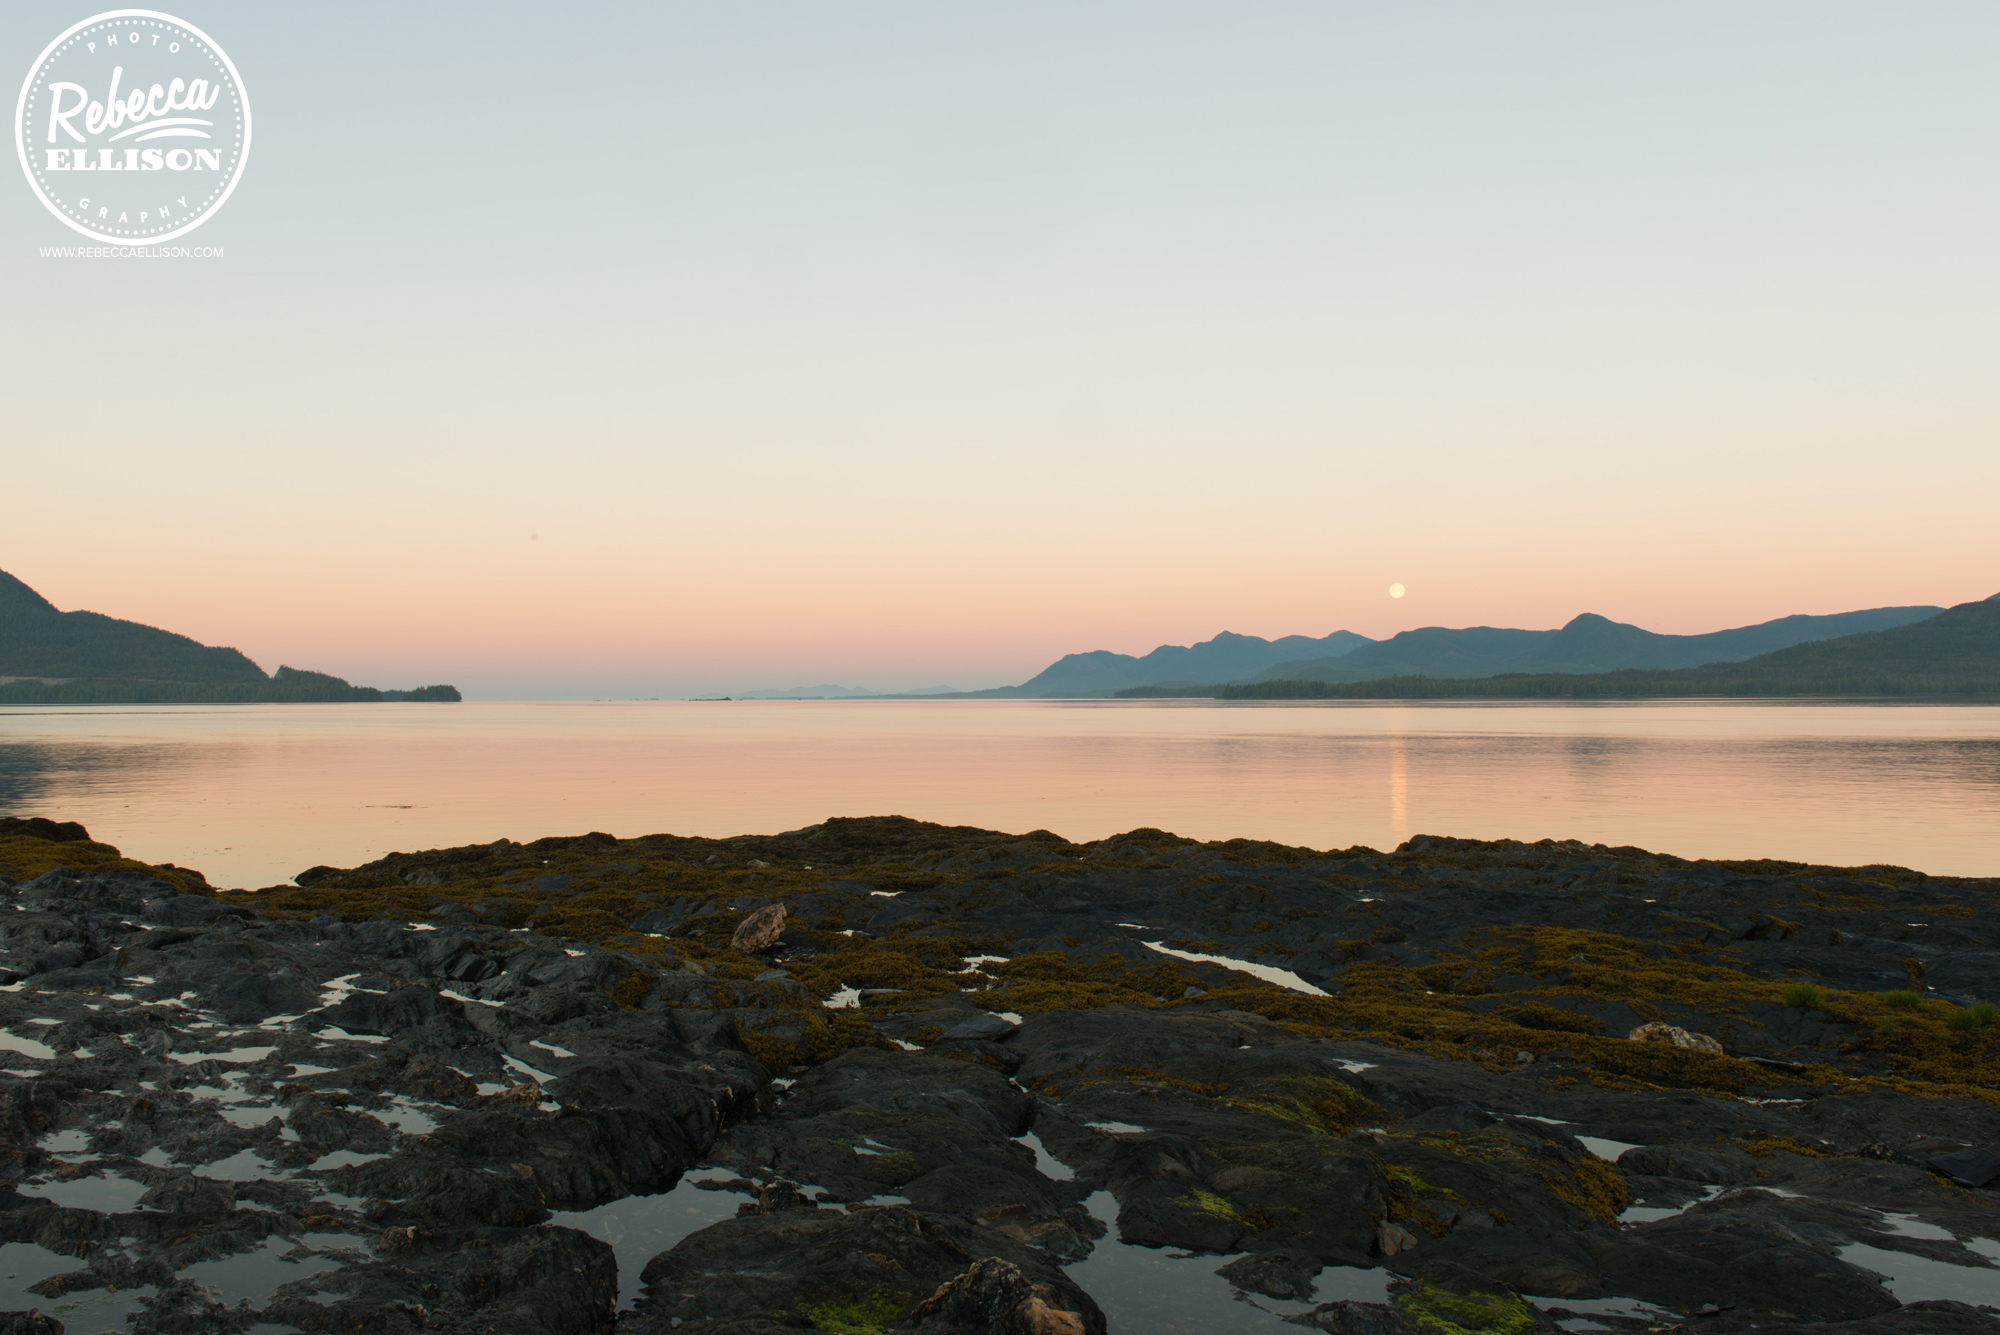 Sunrise in Ketchikan Alaska looking out over a rocky beach photography by Rebecca Ellison